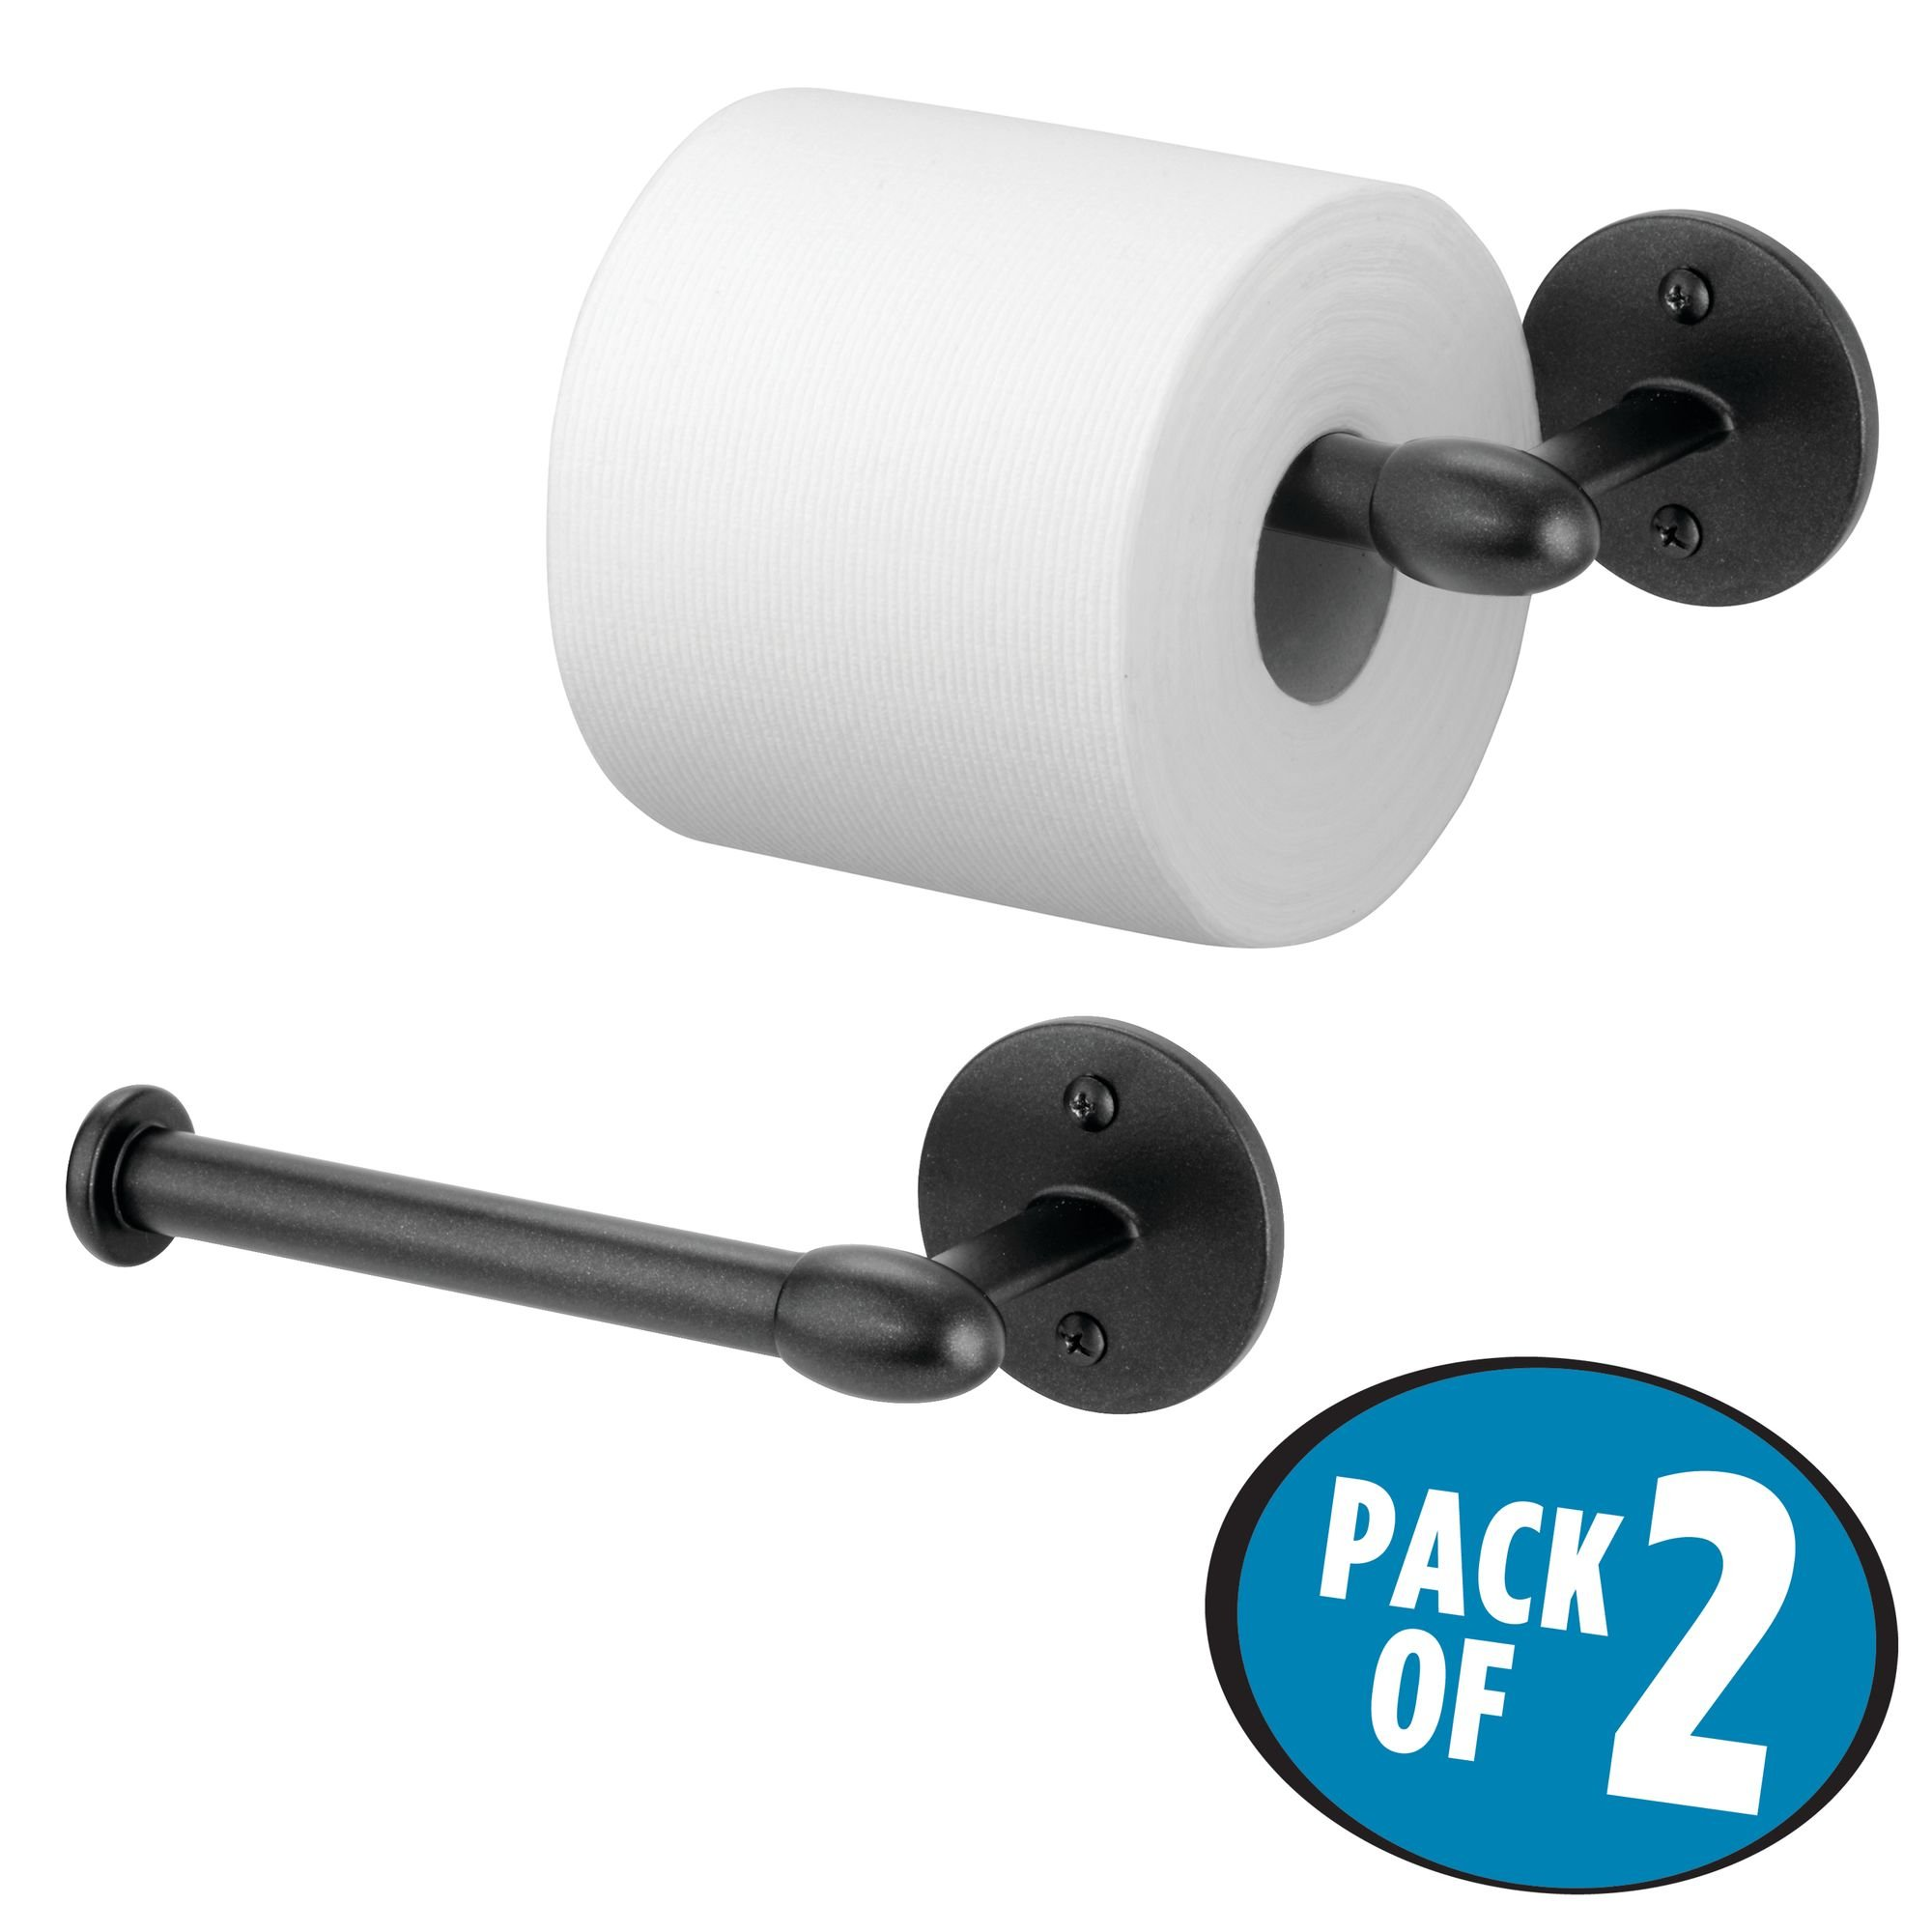 mDesign Wall Mount Toilet Tissue Paper Roll Holder and Dispenser for Bathroom Storage - Wall Mount, Holds and Dispenses One Roll, Mounting Hardware Included - Pack of 2, Strong Metal in Matte Black